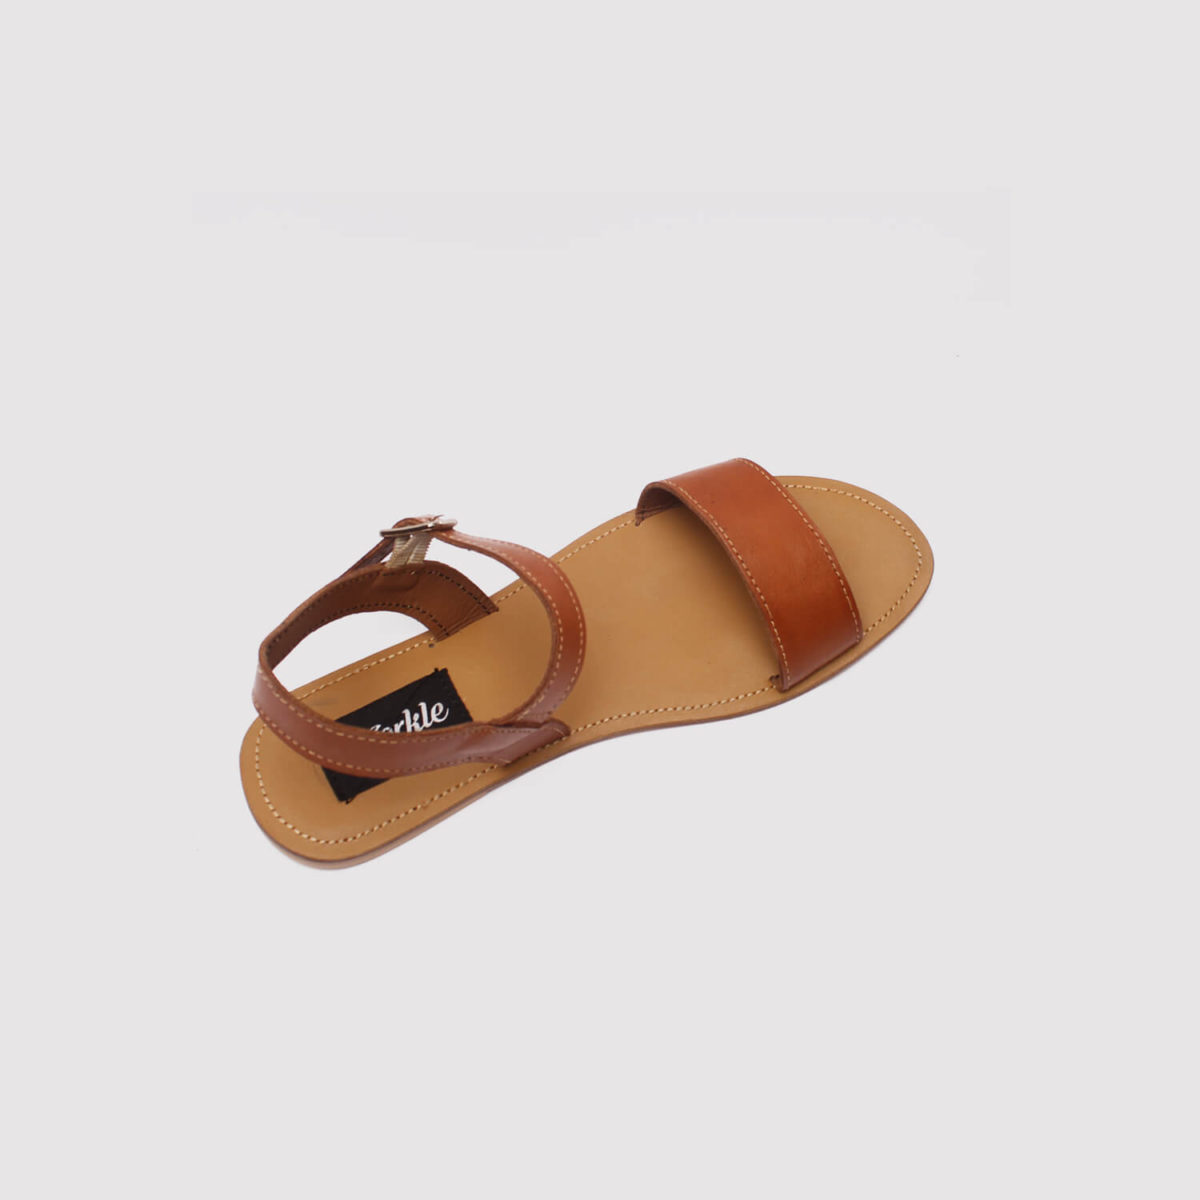 toni sandals brown leather by zorkle shoes in lagos nigeria